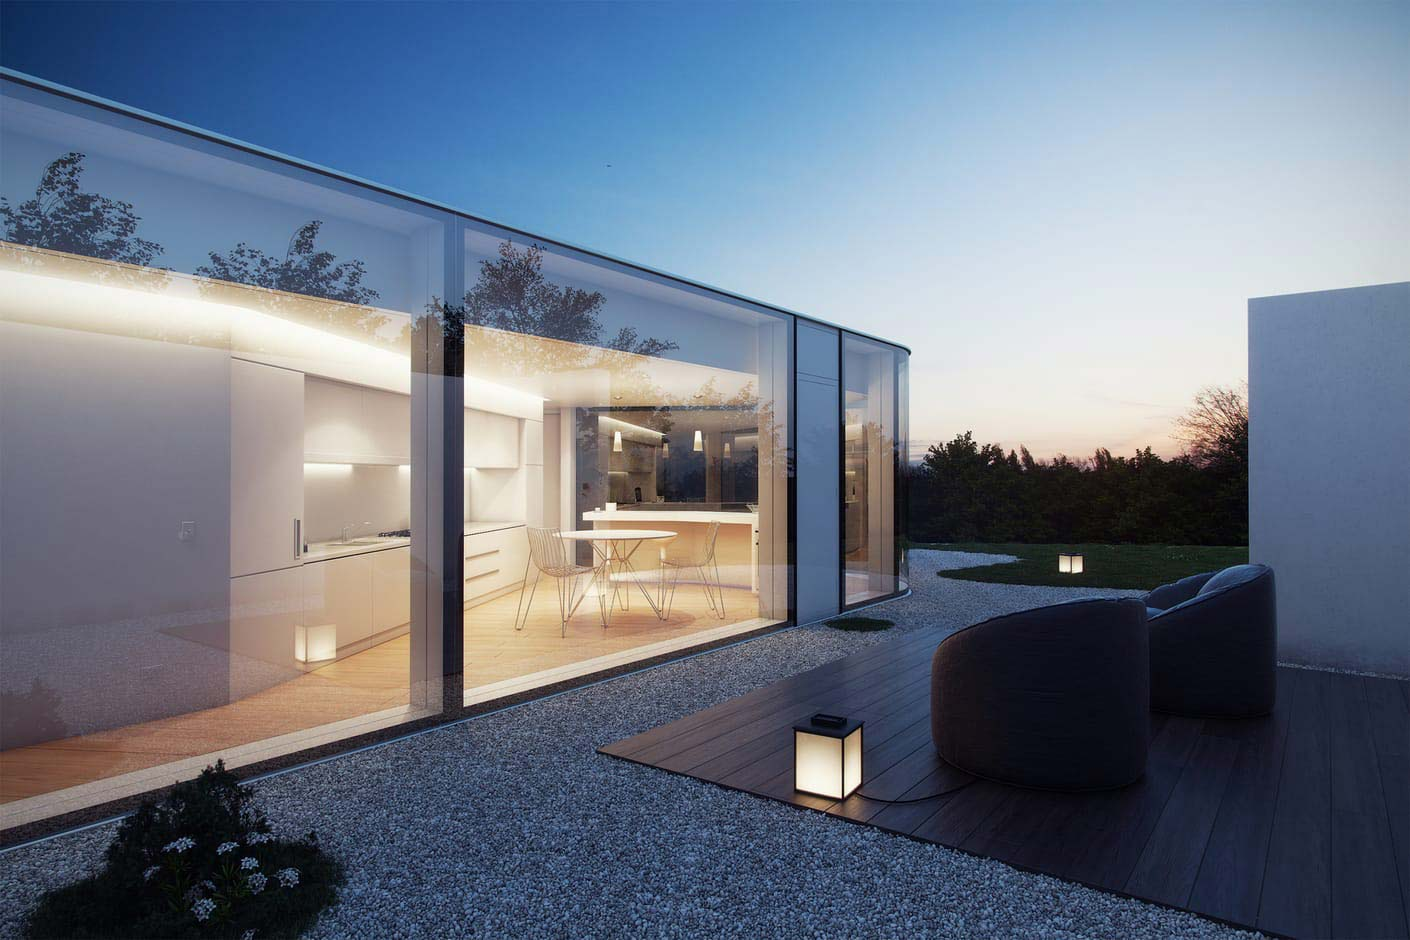 Vray For Sketchup For Mac Os X